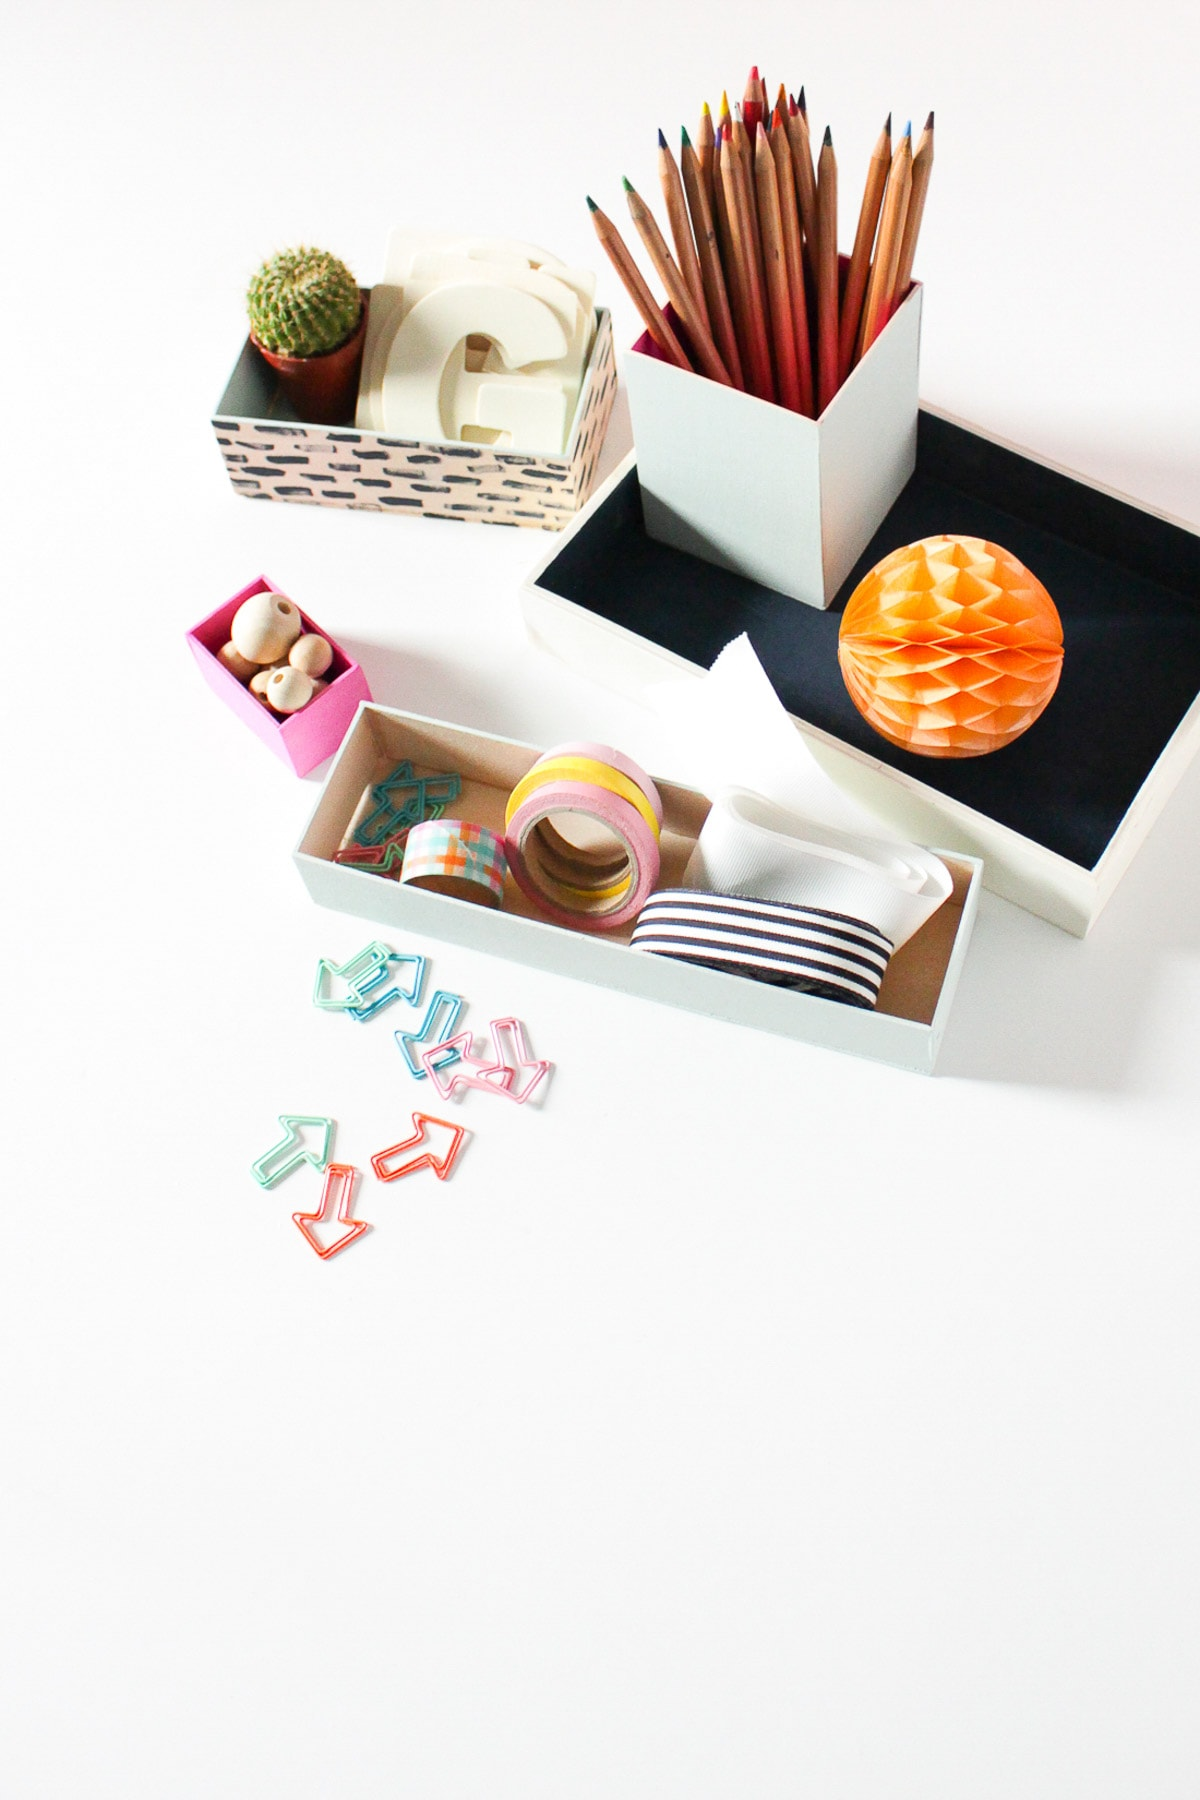 DIY Nesting Desk Organizer by Sugar & Cloth, an award winning DIY, home decor, and recipe blog.